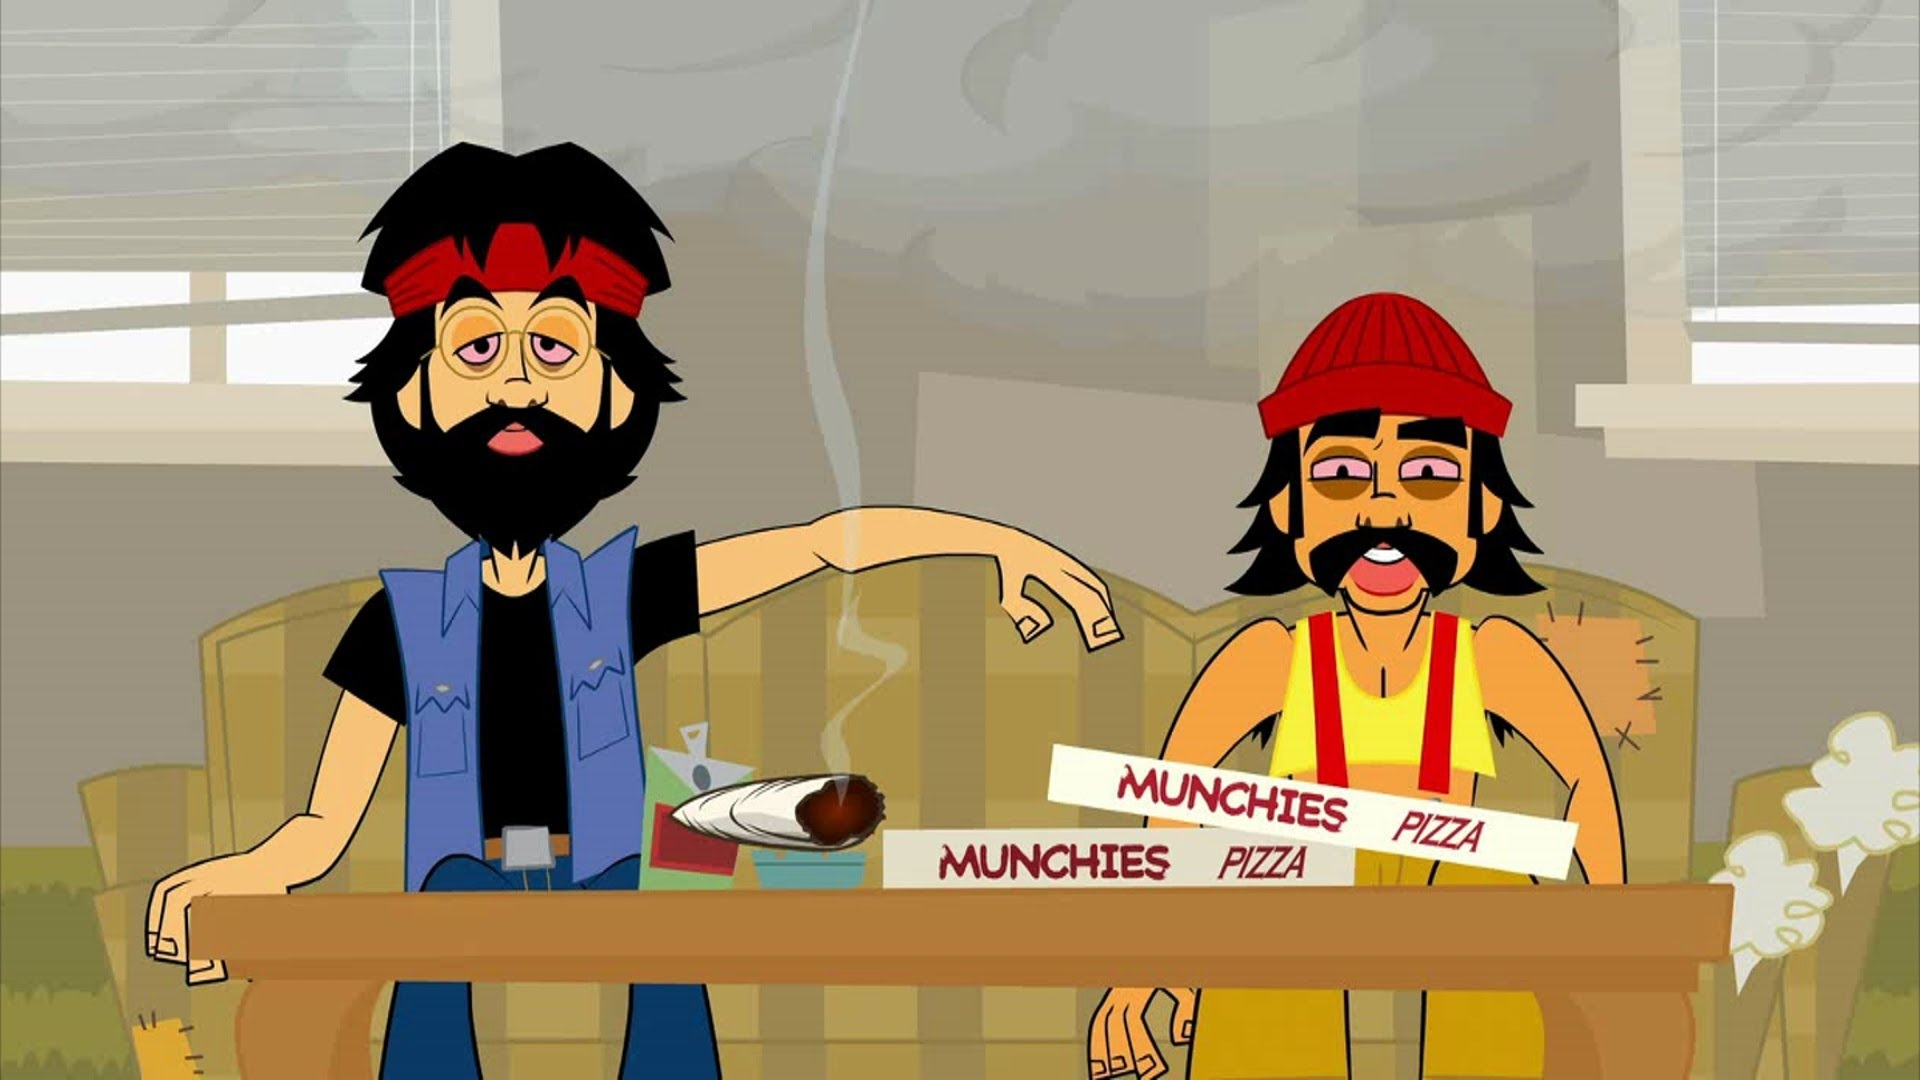 Inspirational Quotes Wallpaper Hd Free Download Cheech And Chong Wallpapers Pixelstalk Net